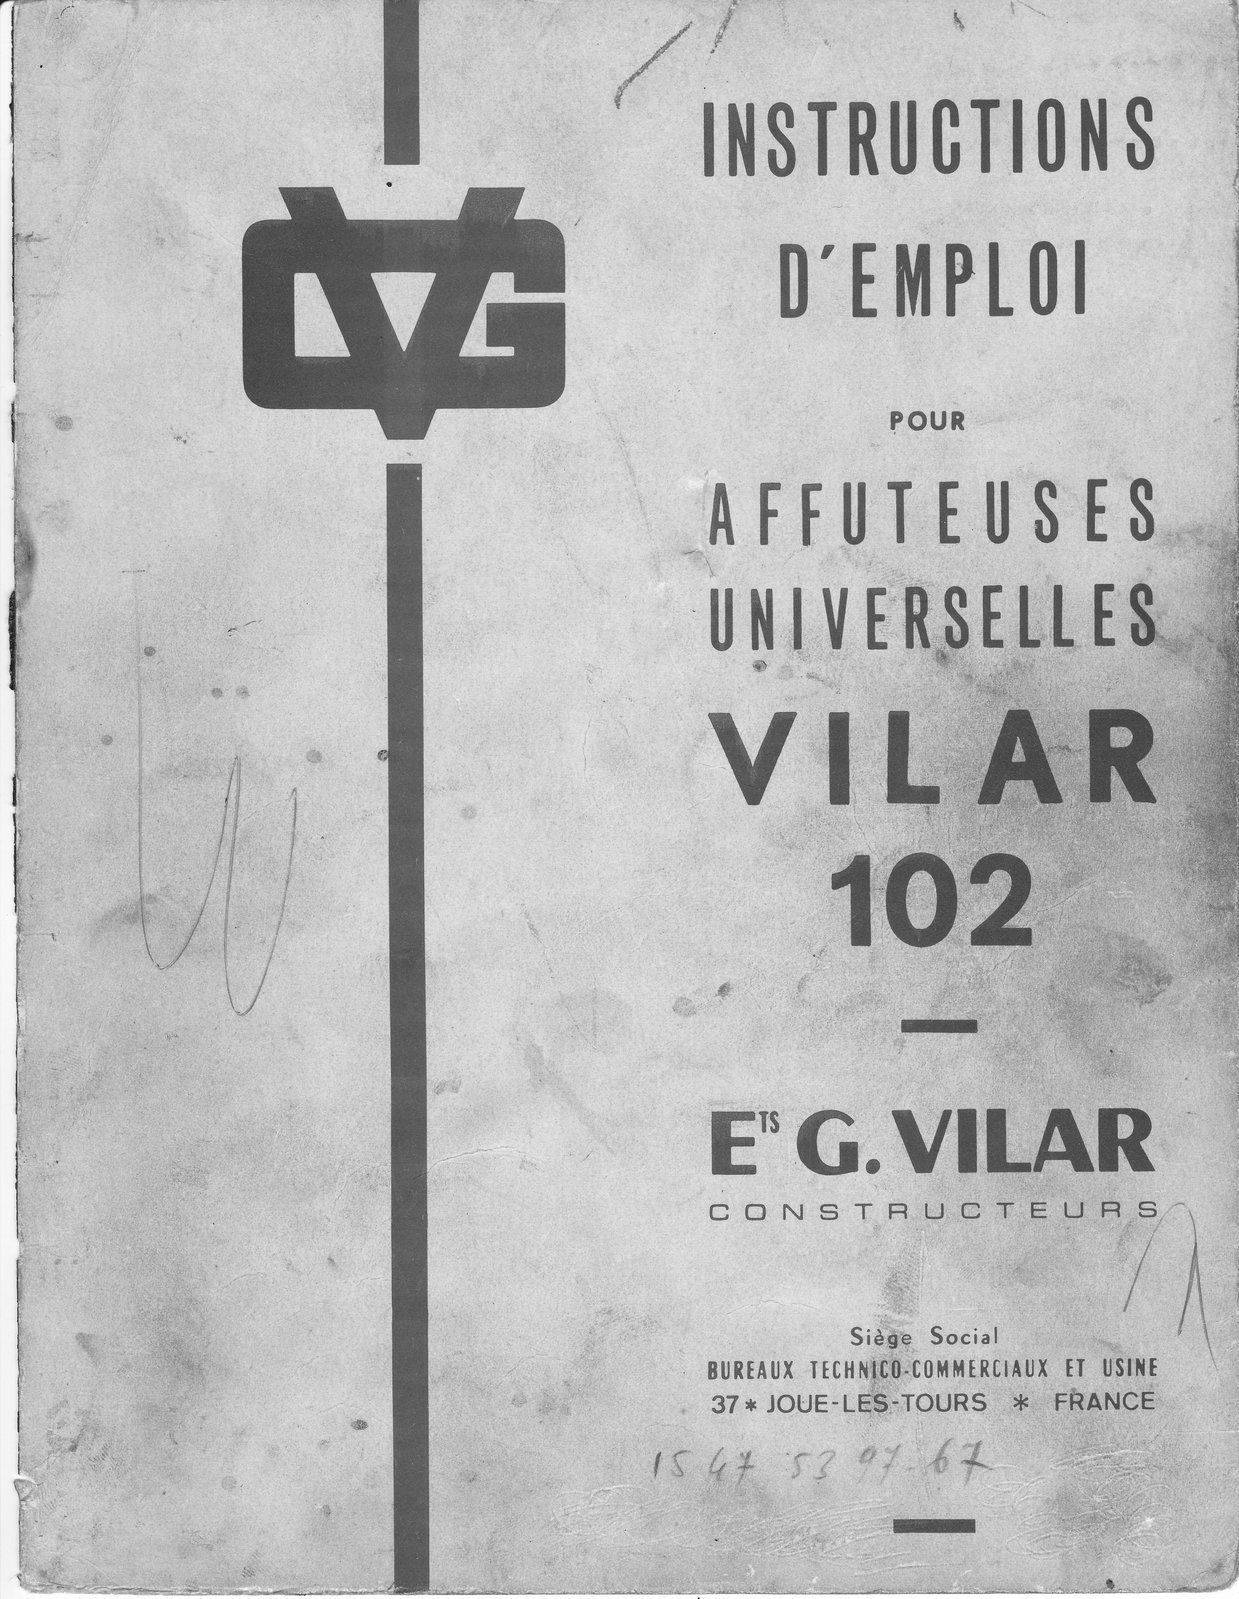 INSTRUCTION VILAR.jpg